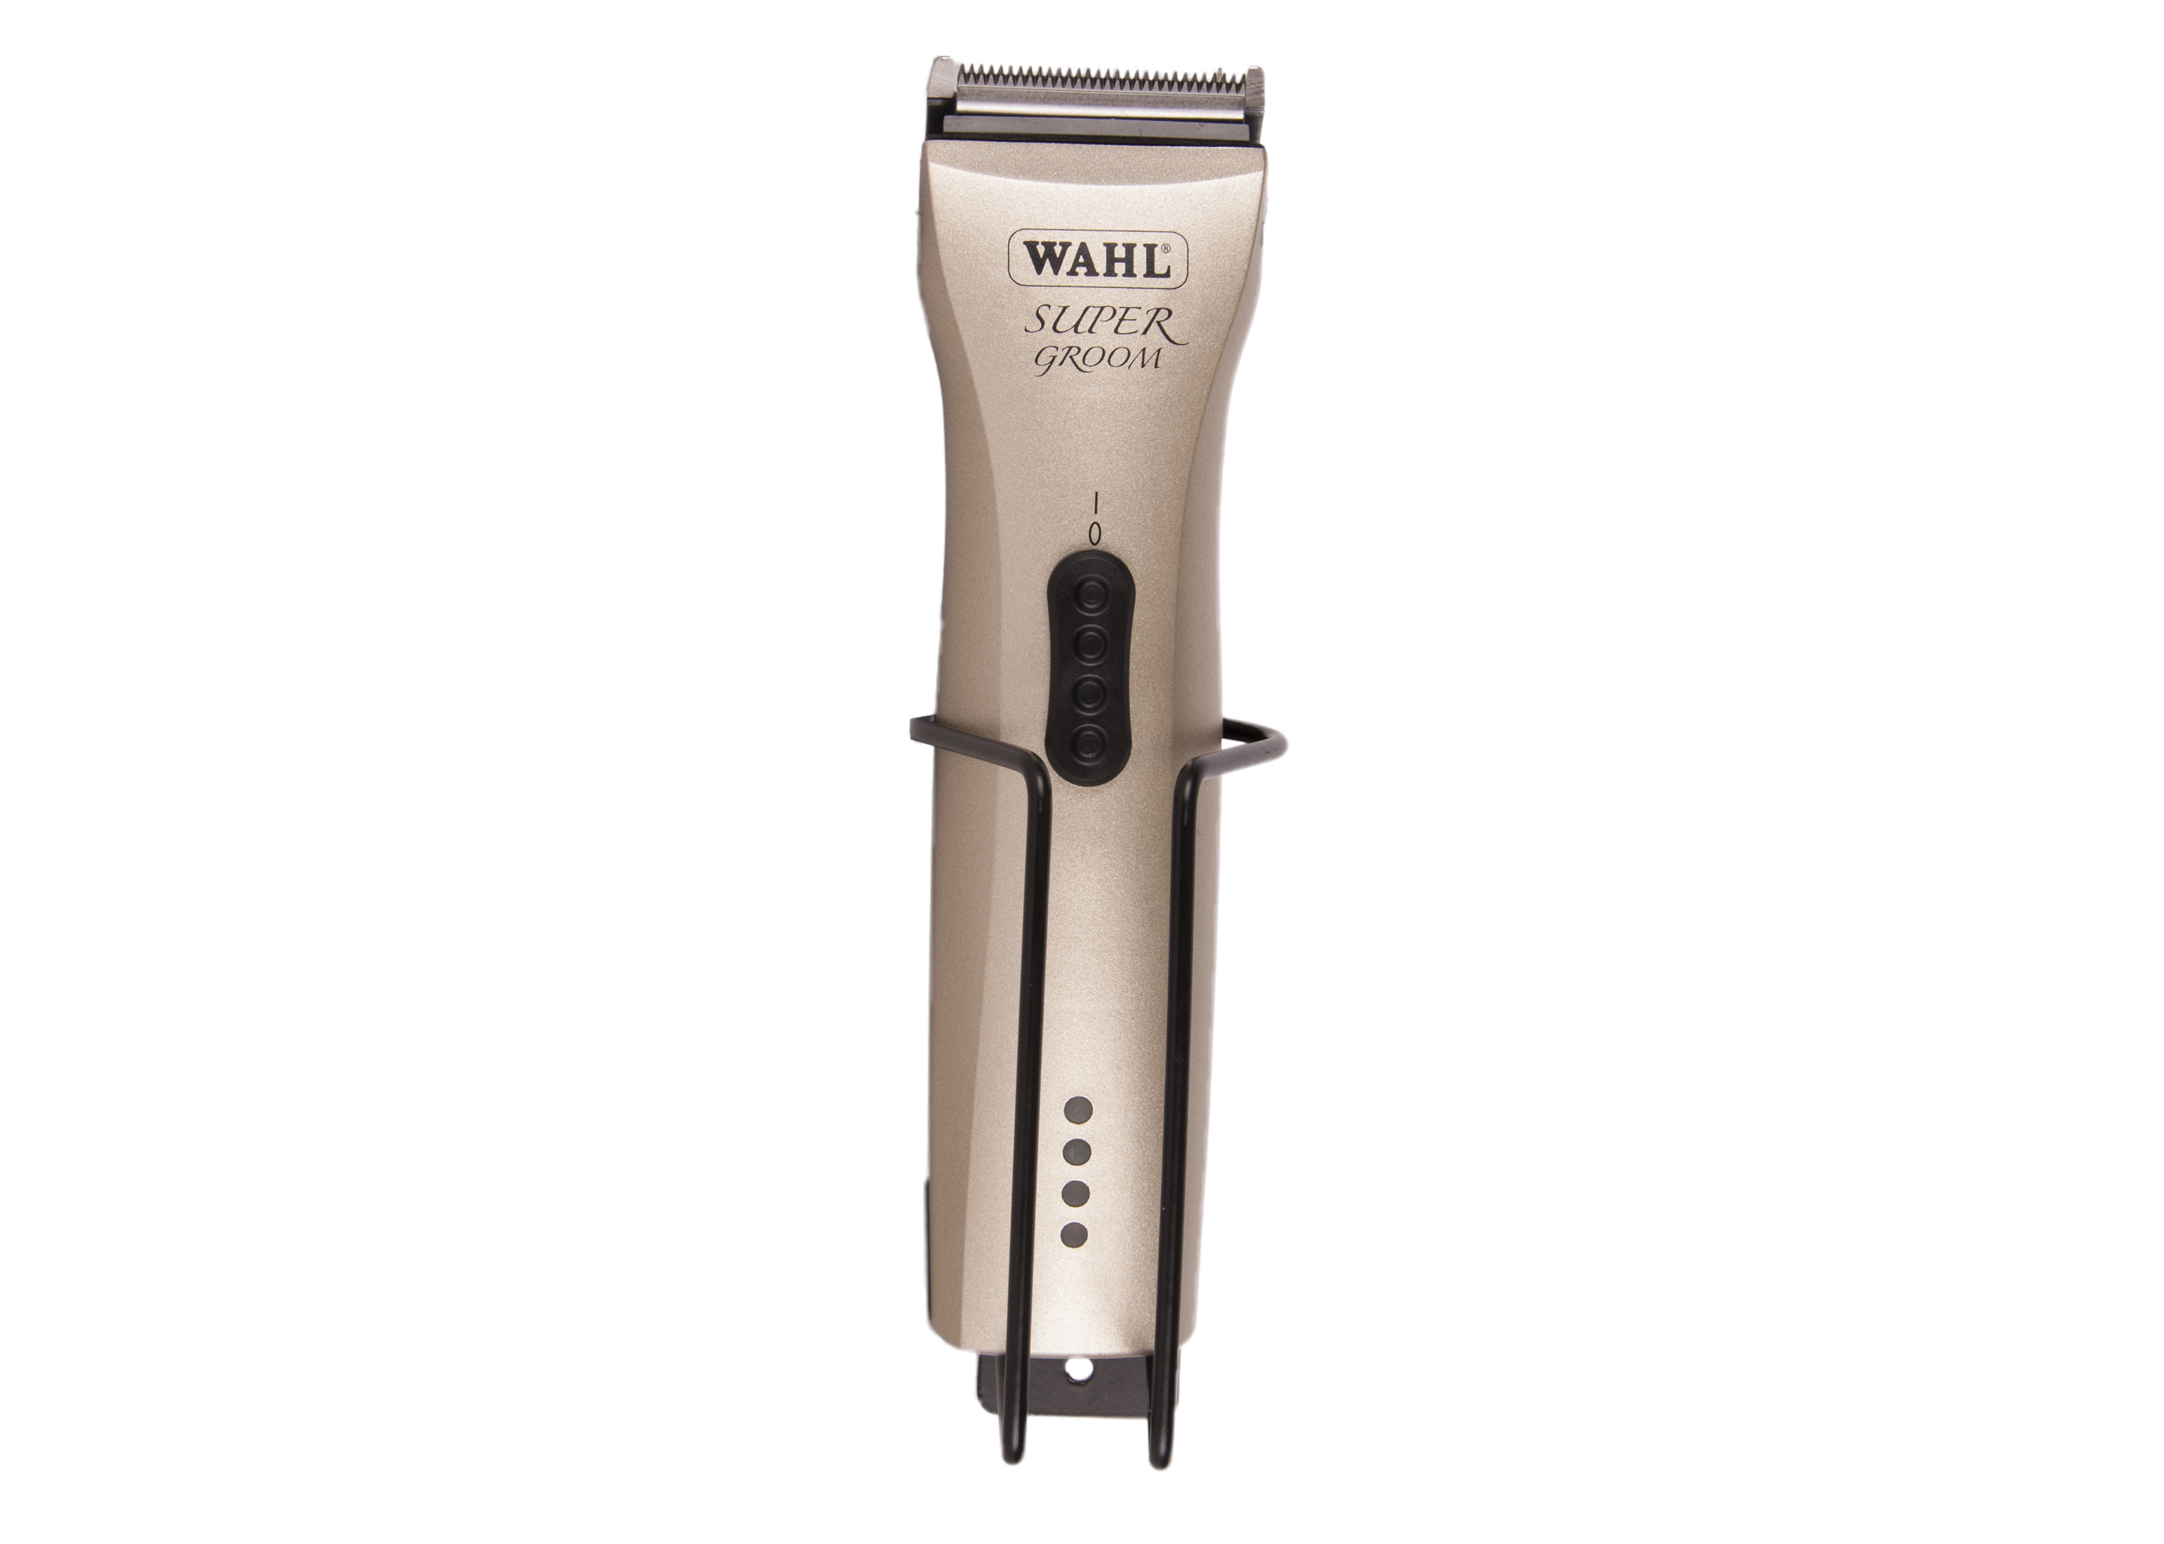 Wahl Holder for Clippers Black